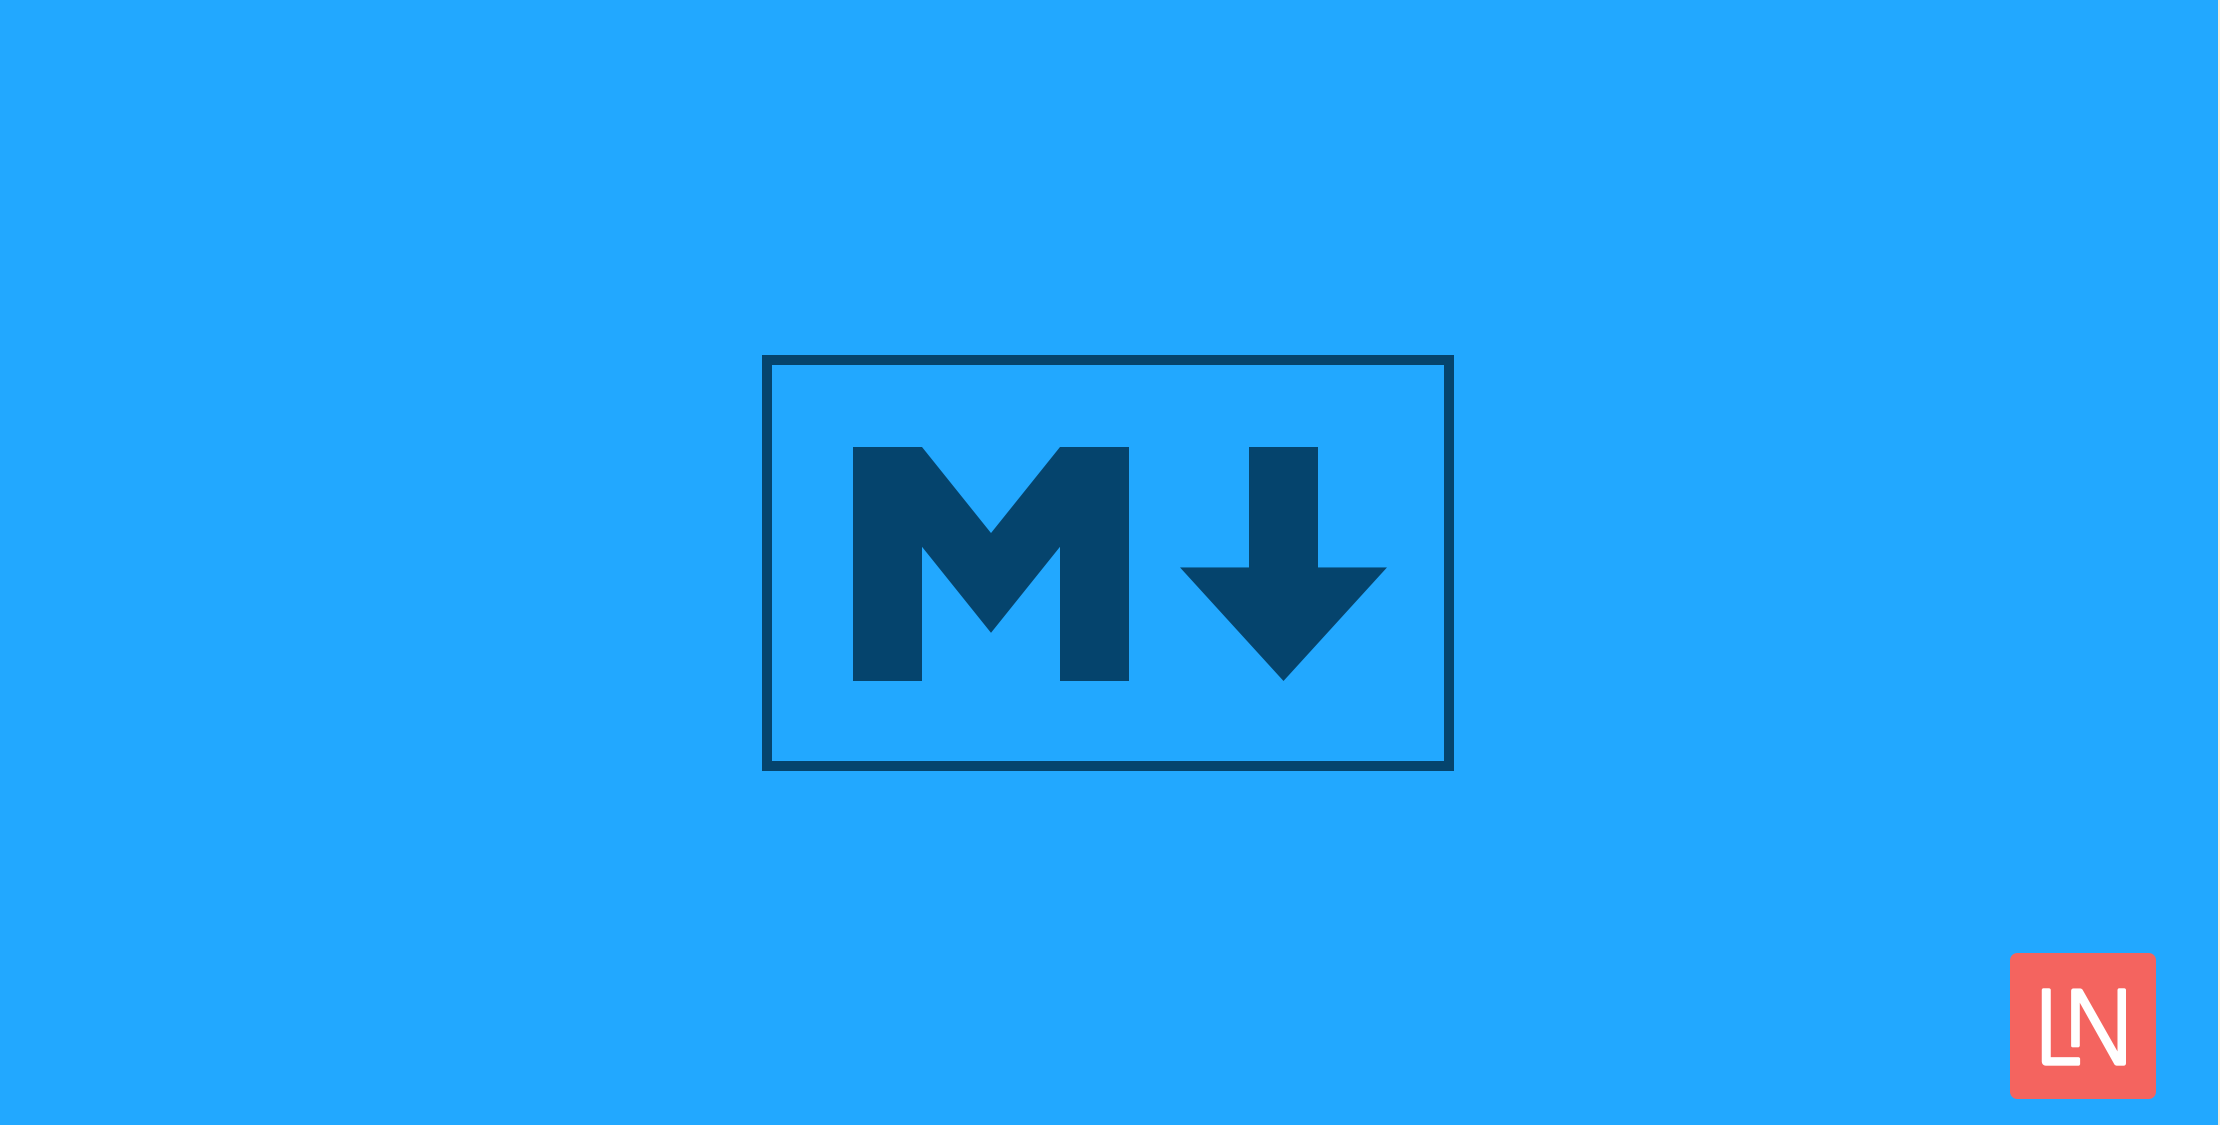 markdown-logo-featured.png